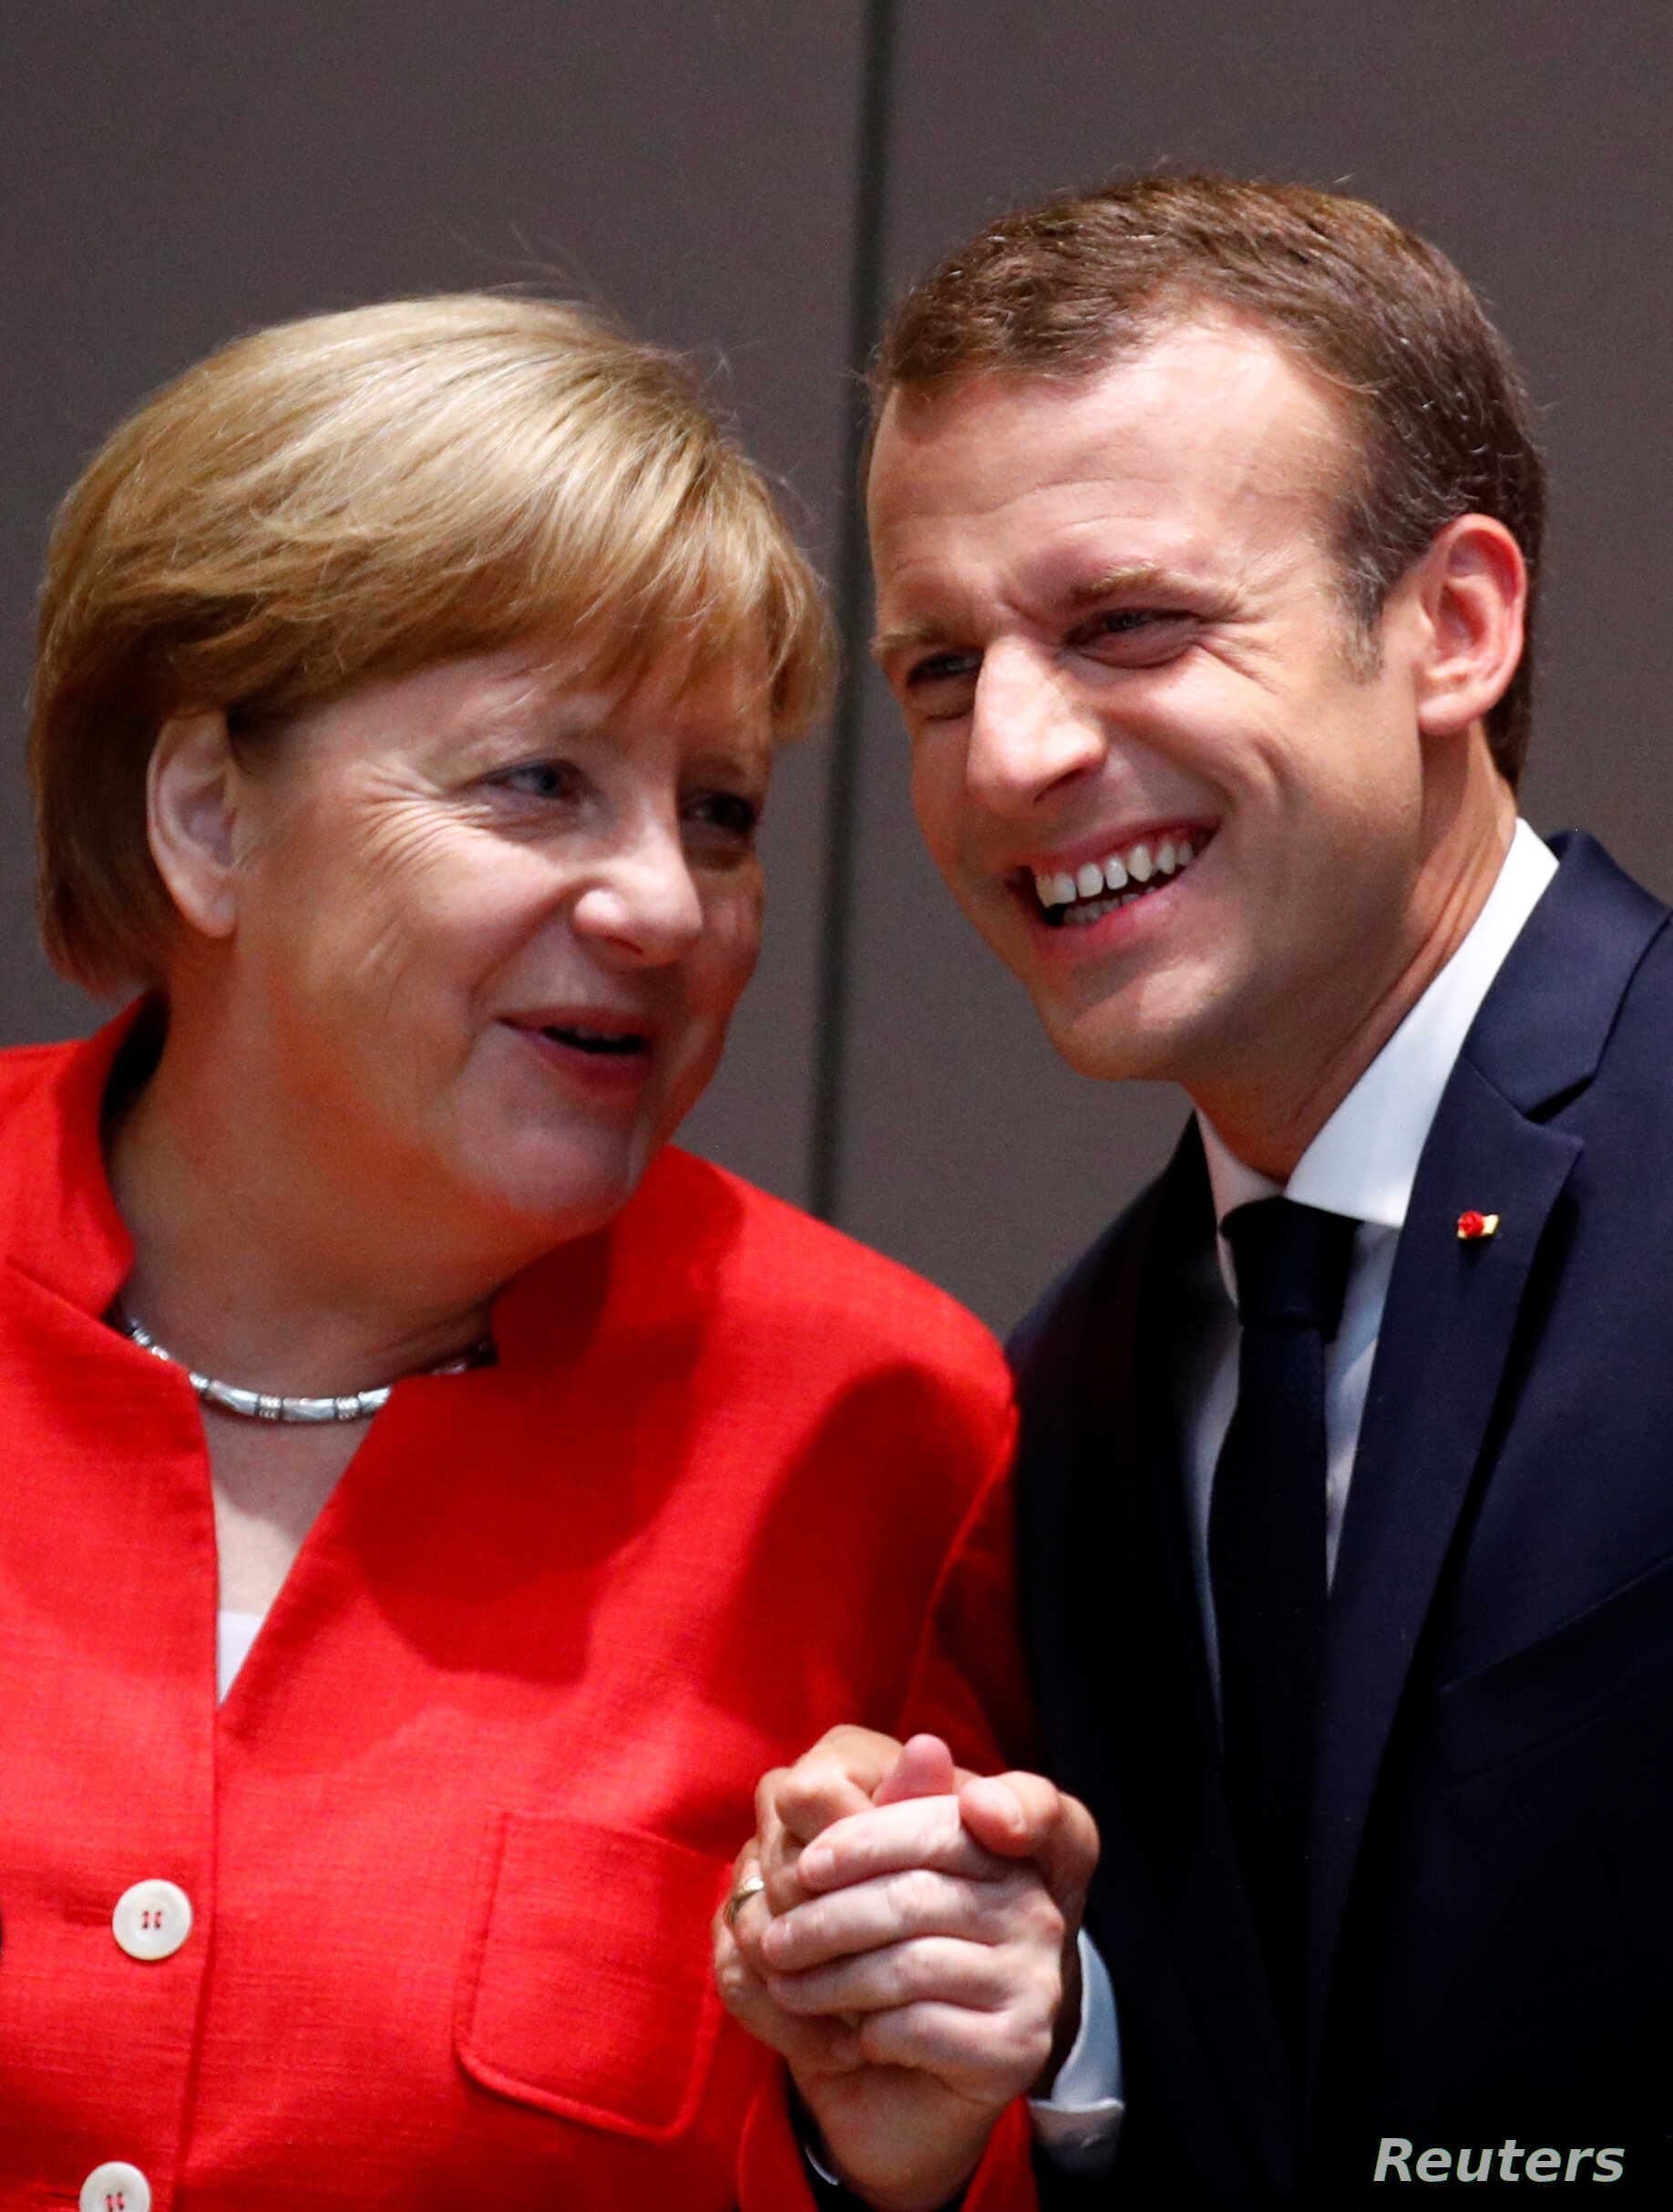 FILE - German Chancellor Angela Merkel shares a laugh with French President Emmanuel Macron as they arrive at a European Union leaders summit in Brussels, Belgium, June 29, 2018.